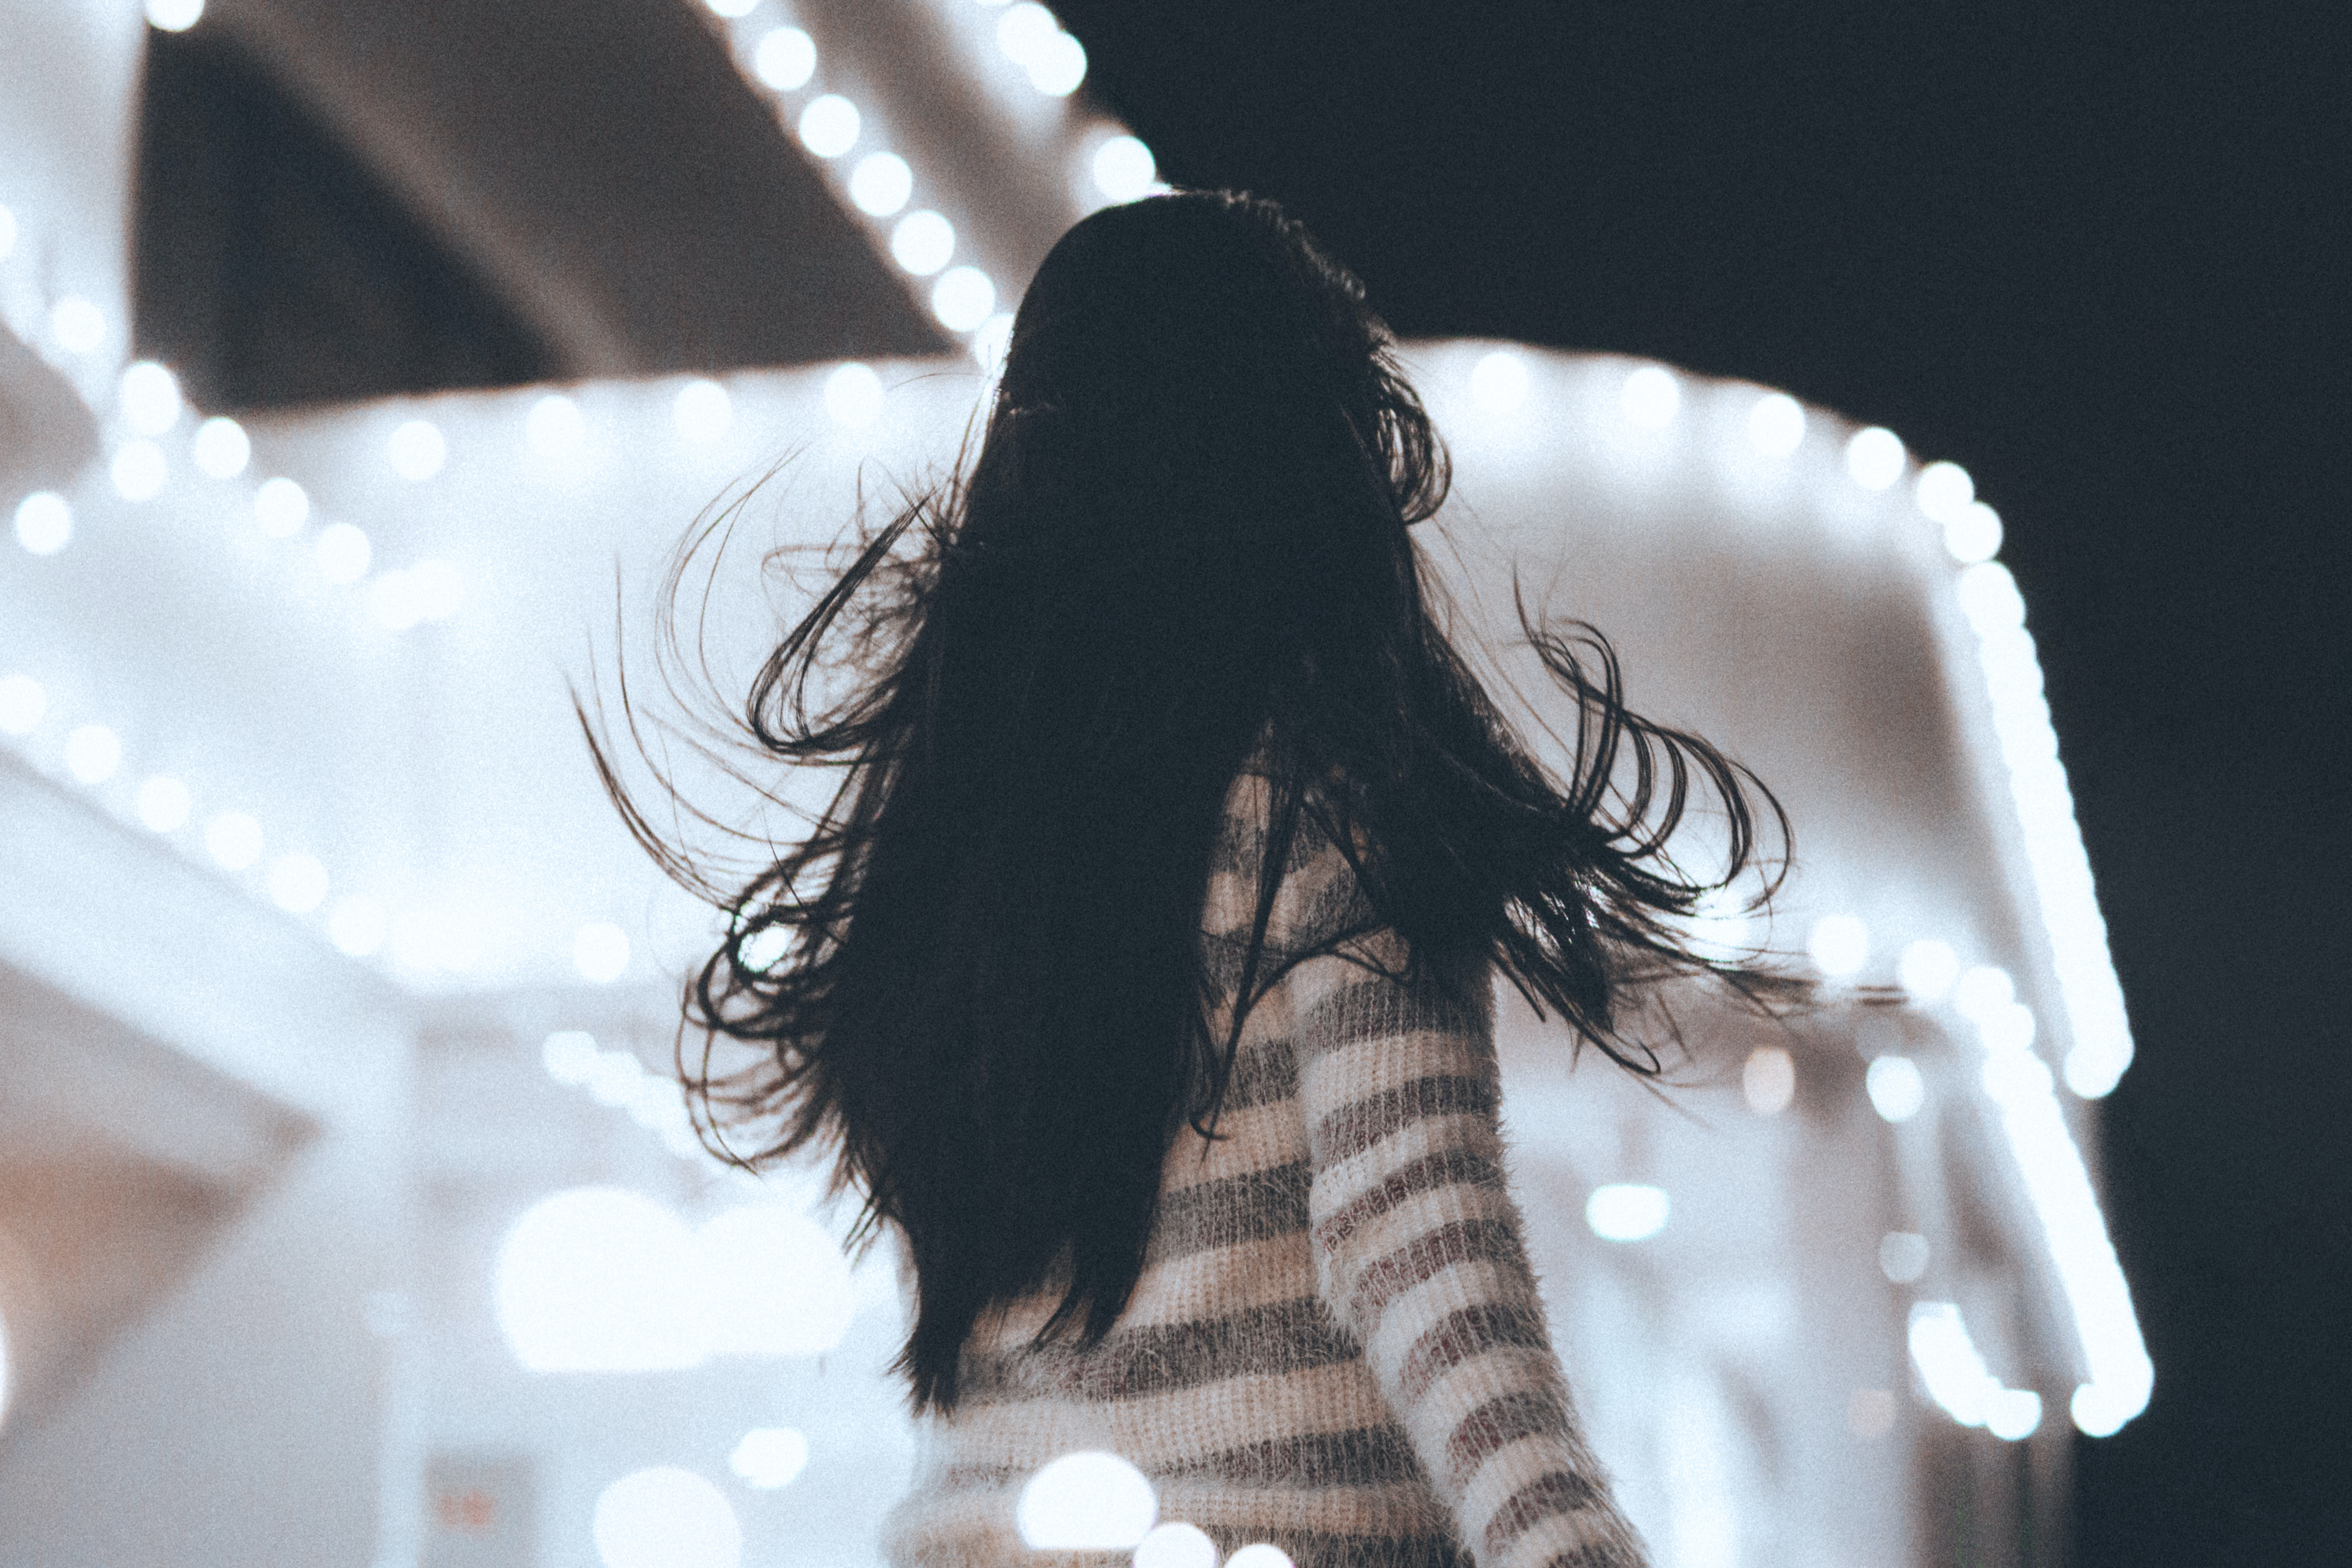 shallow focus photography of woman facing white concrete structure during nighttime